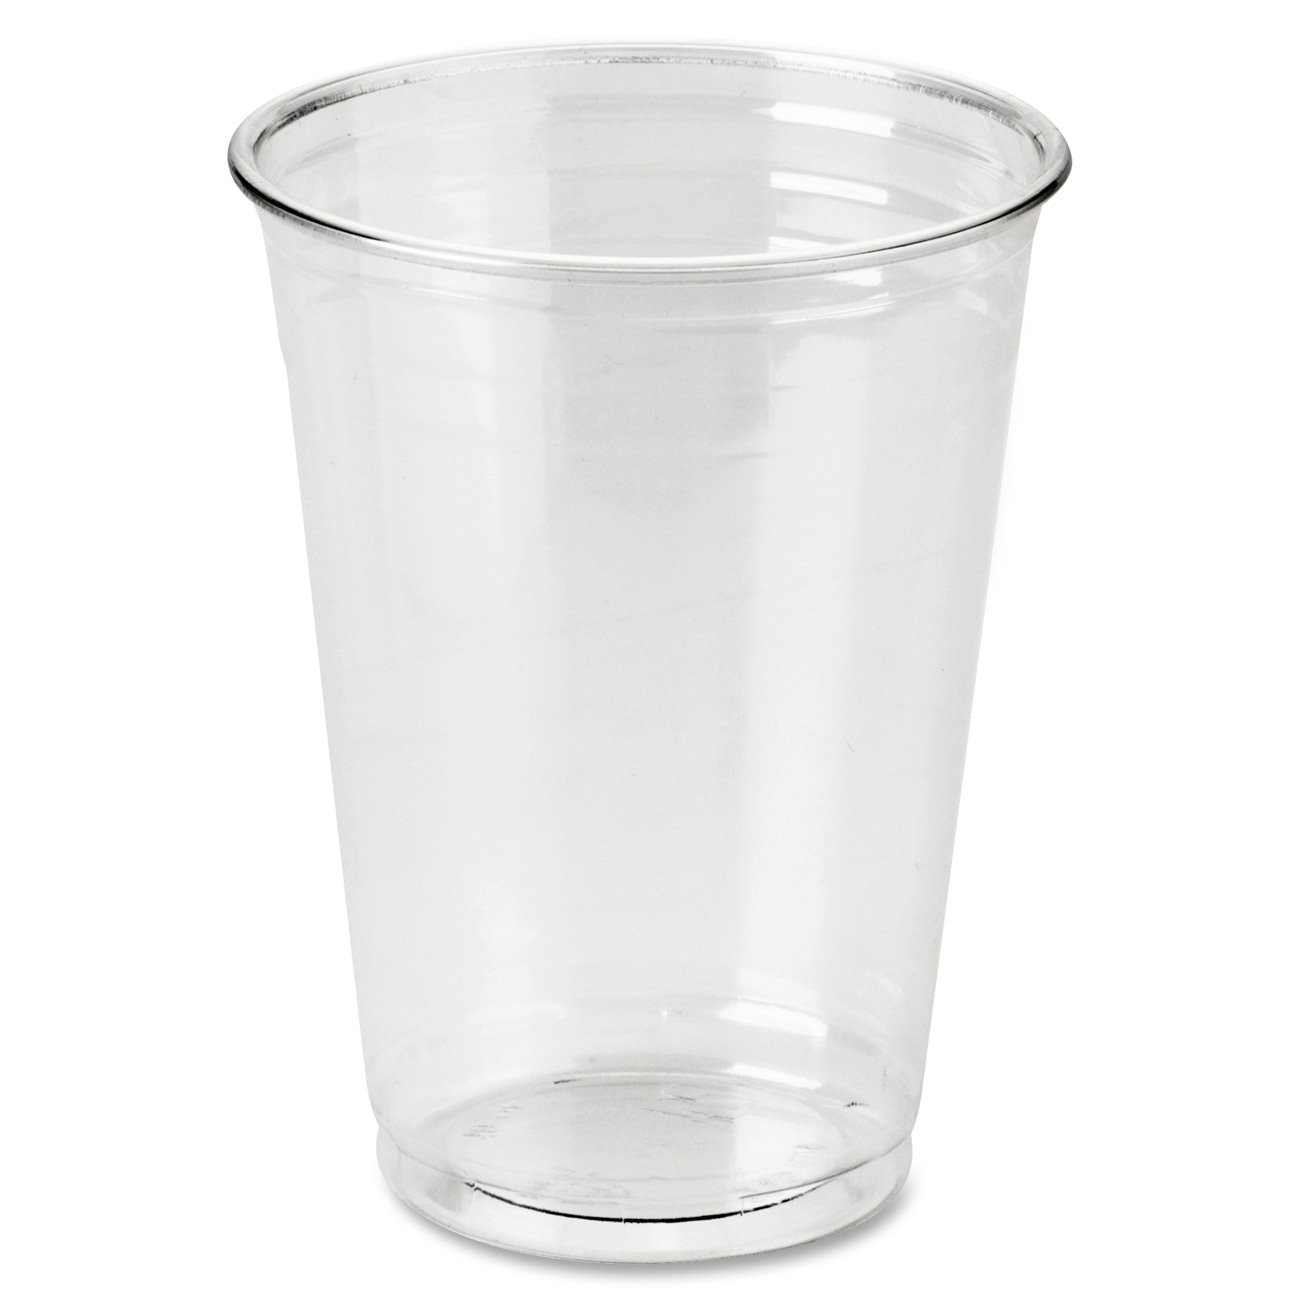 Vasos de plástico biodegradables, 255 ml, reciclables ...